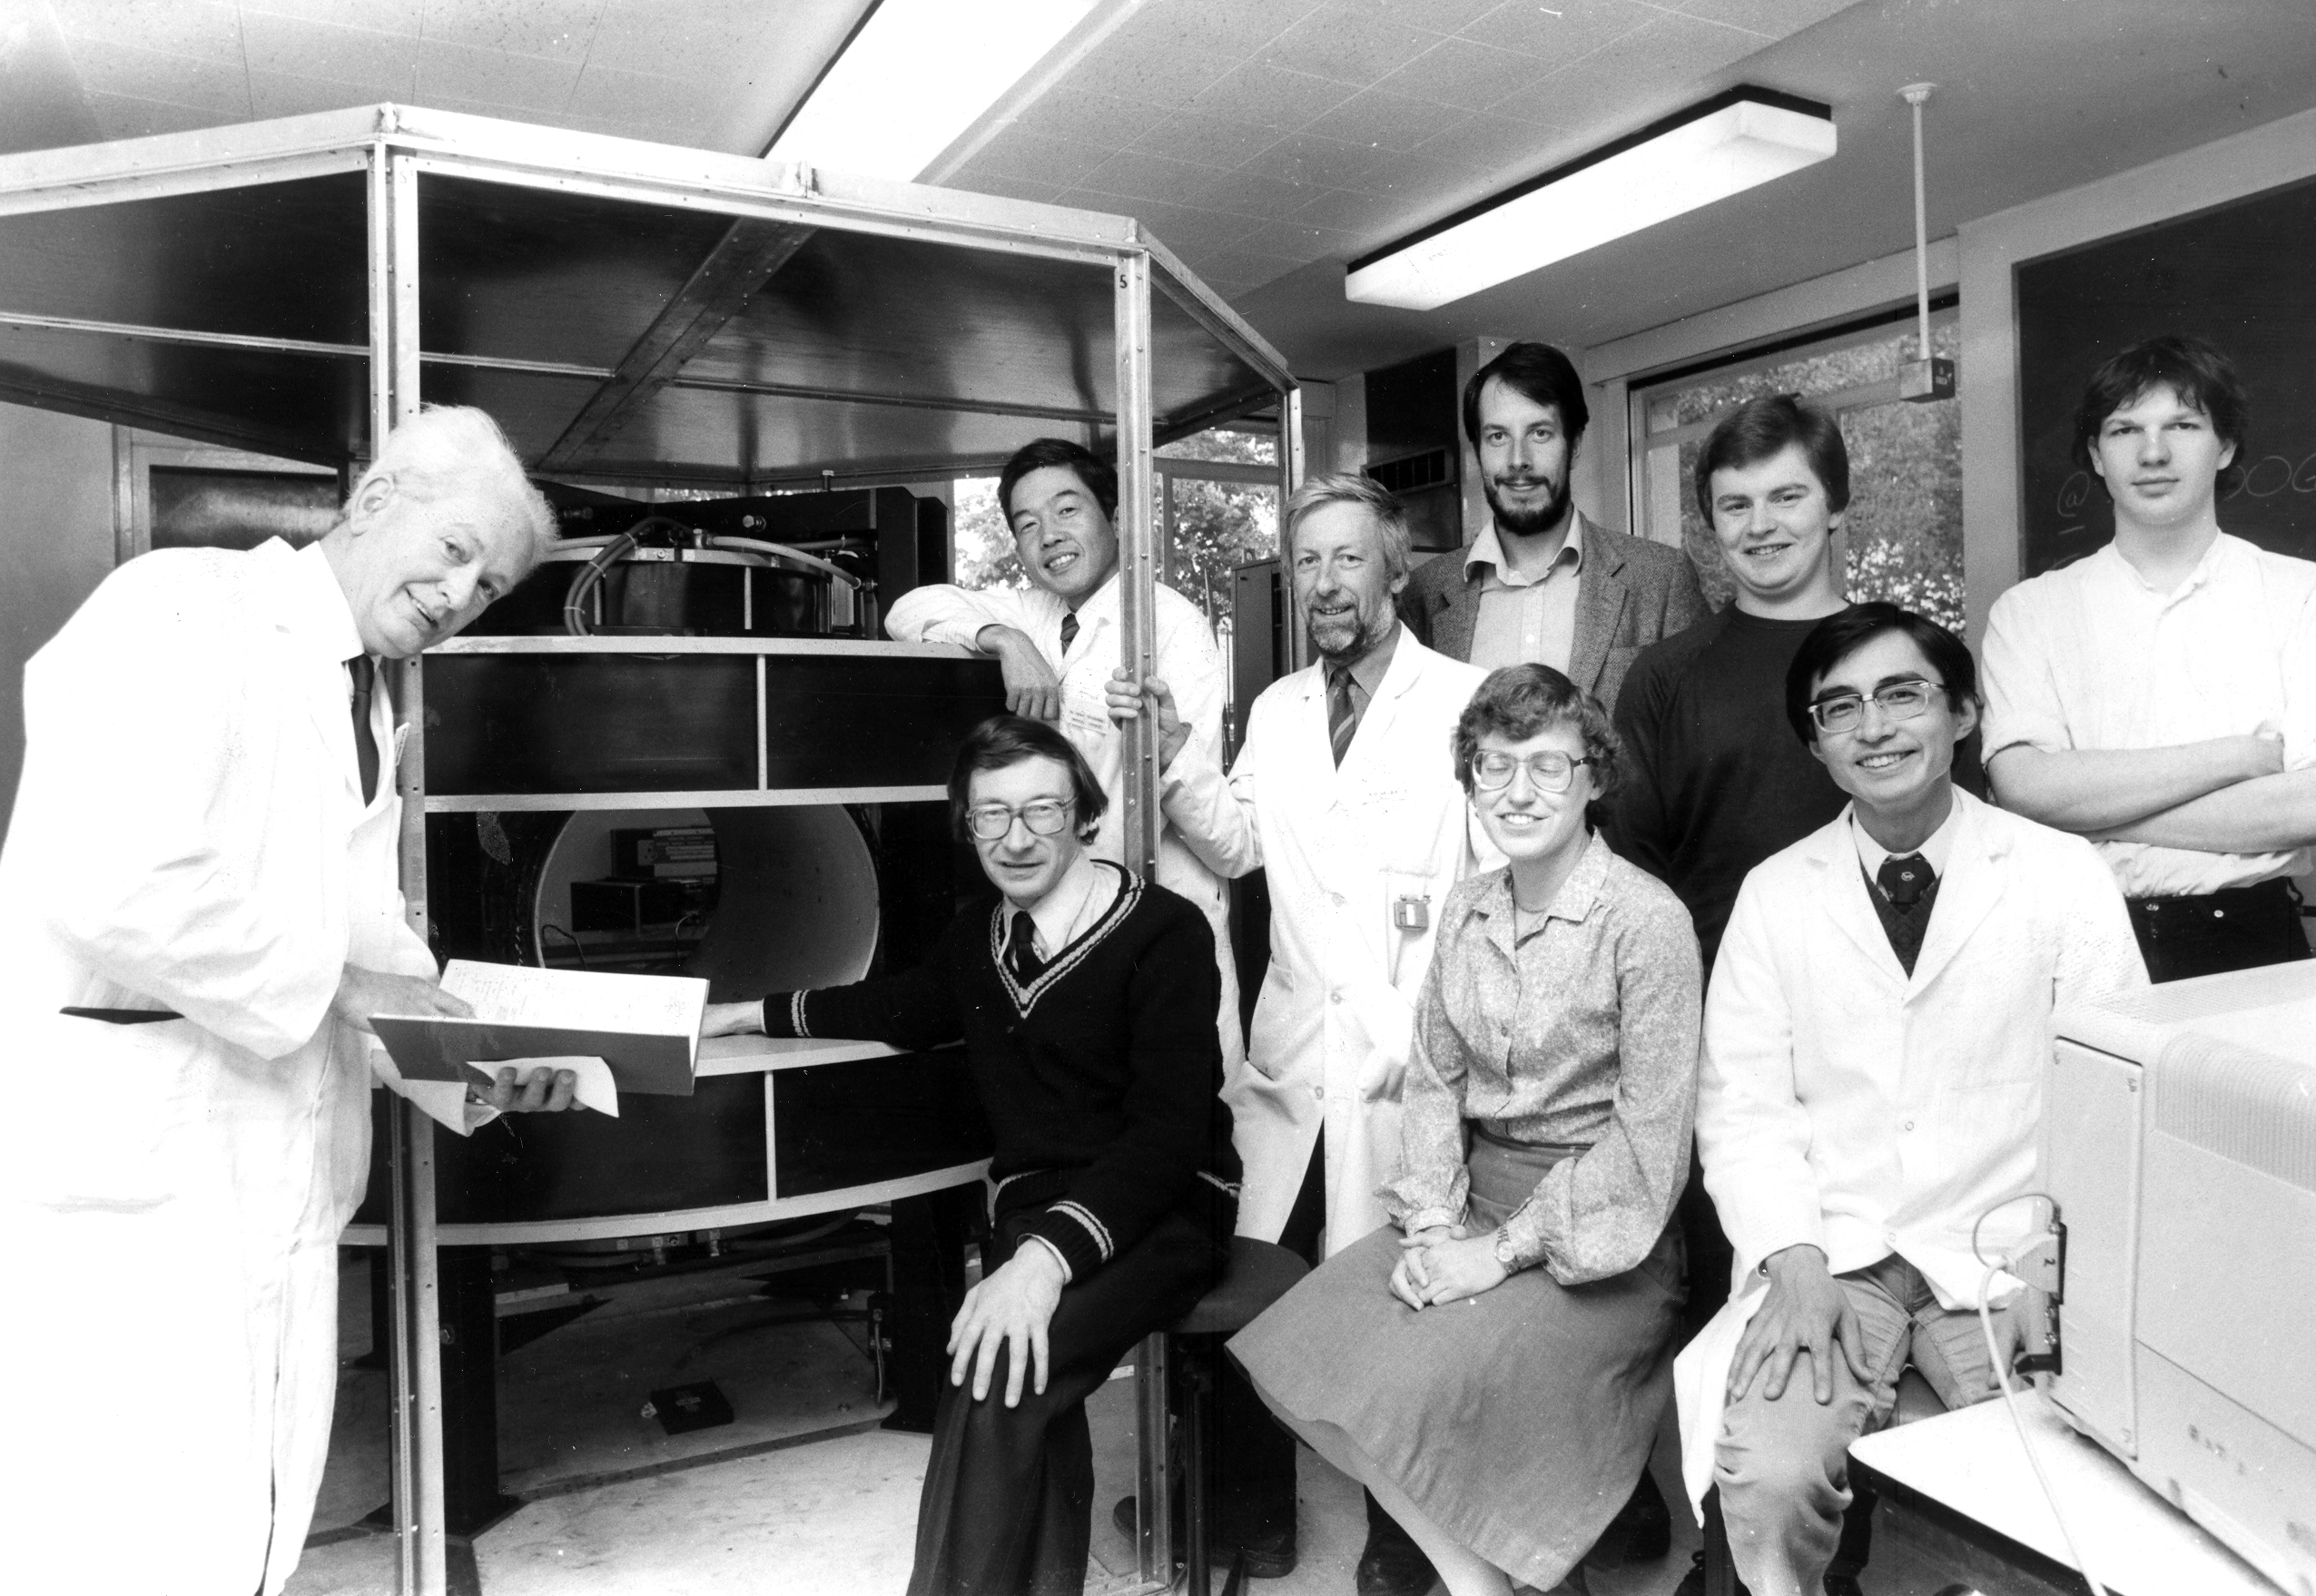 Prof Mallard, left, and his team of medical physicists in 1982.